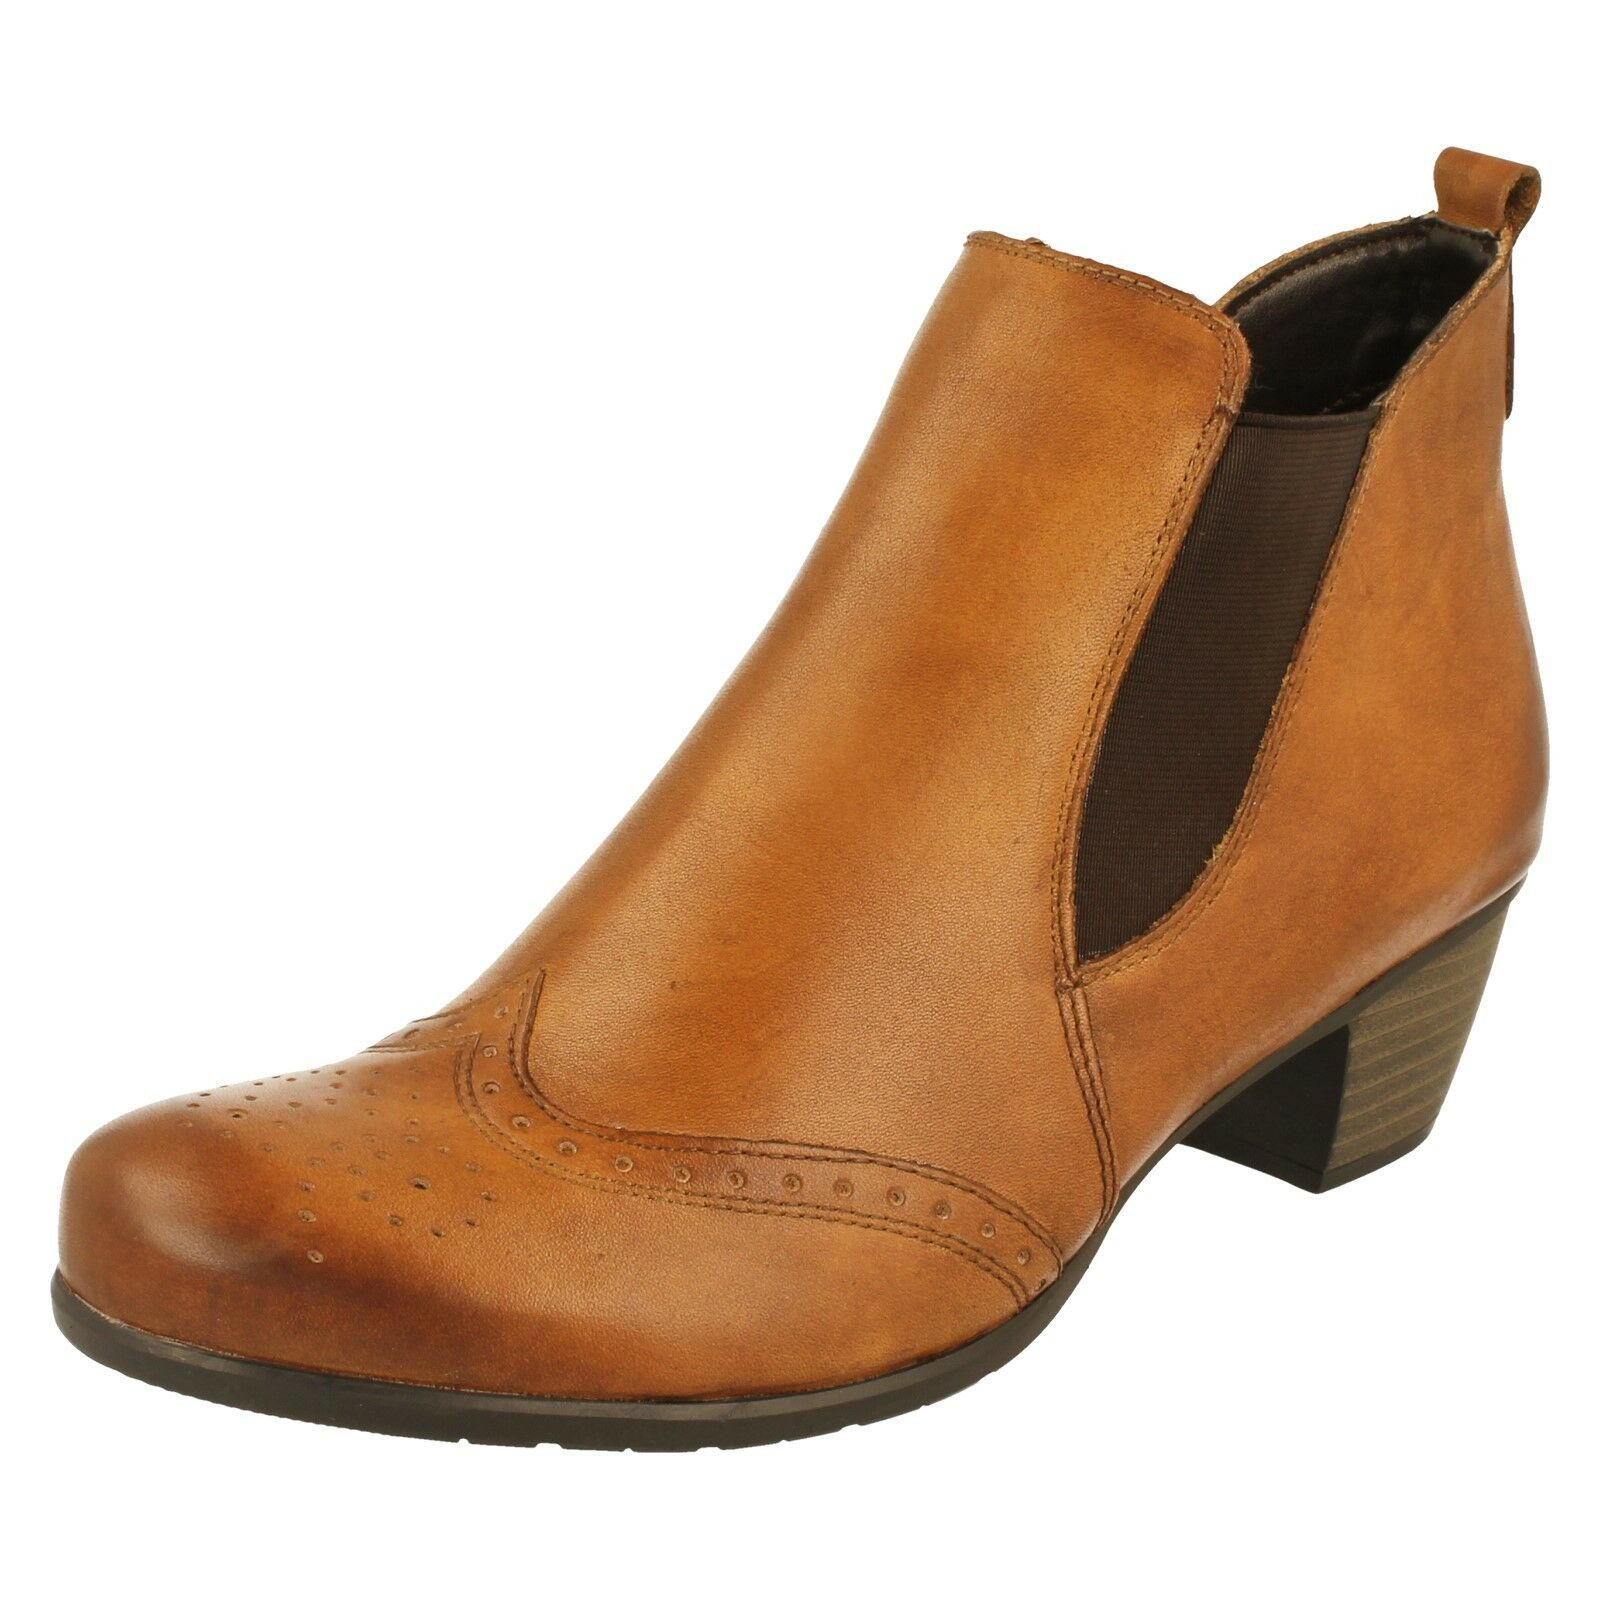 Gentleman/Lady Ladies Remonte Ankle Boots - R9187 Reputation first Orders are welcome Very practical